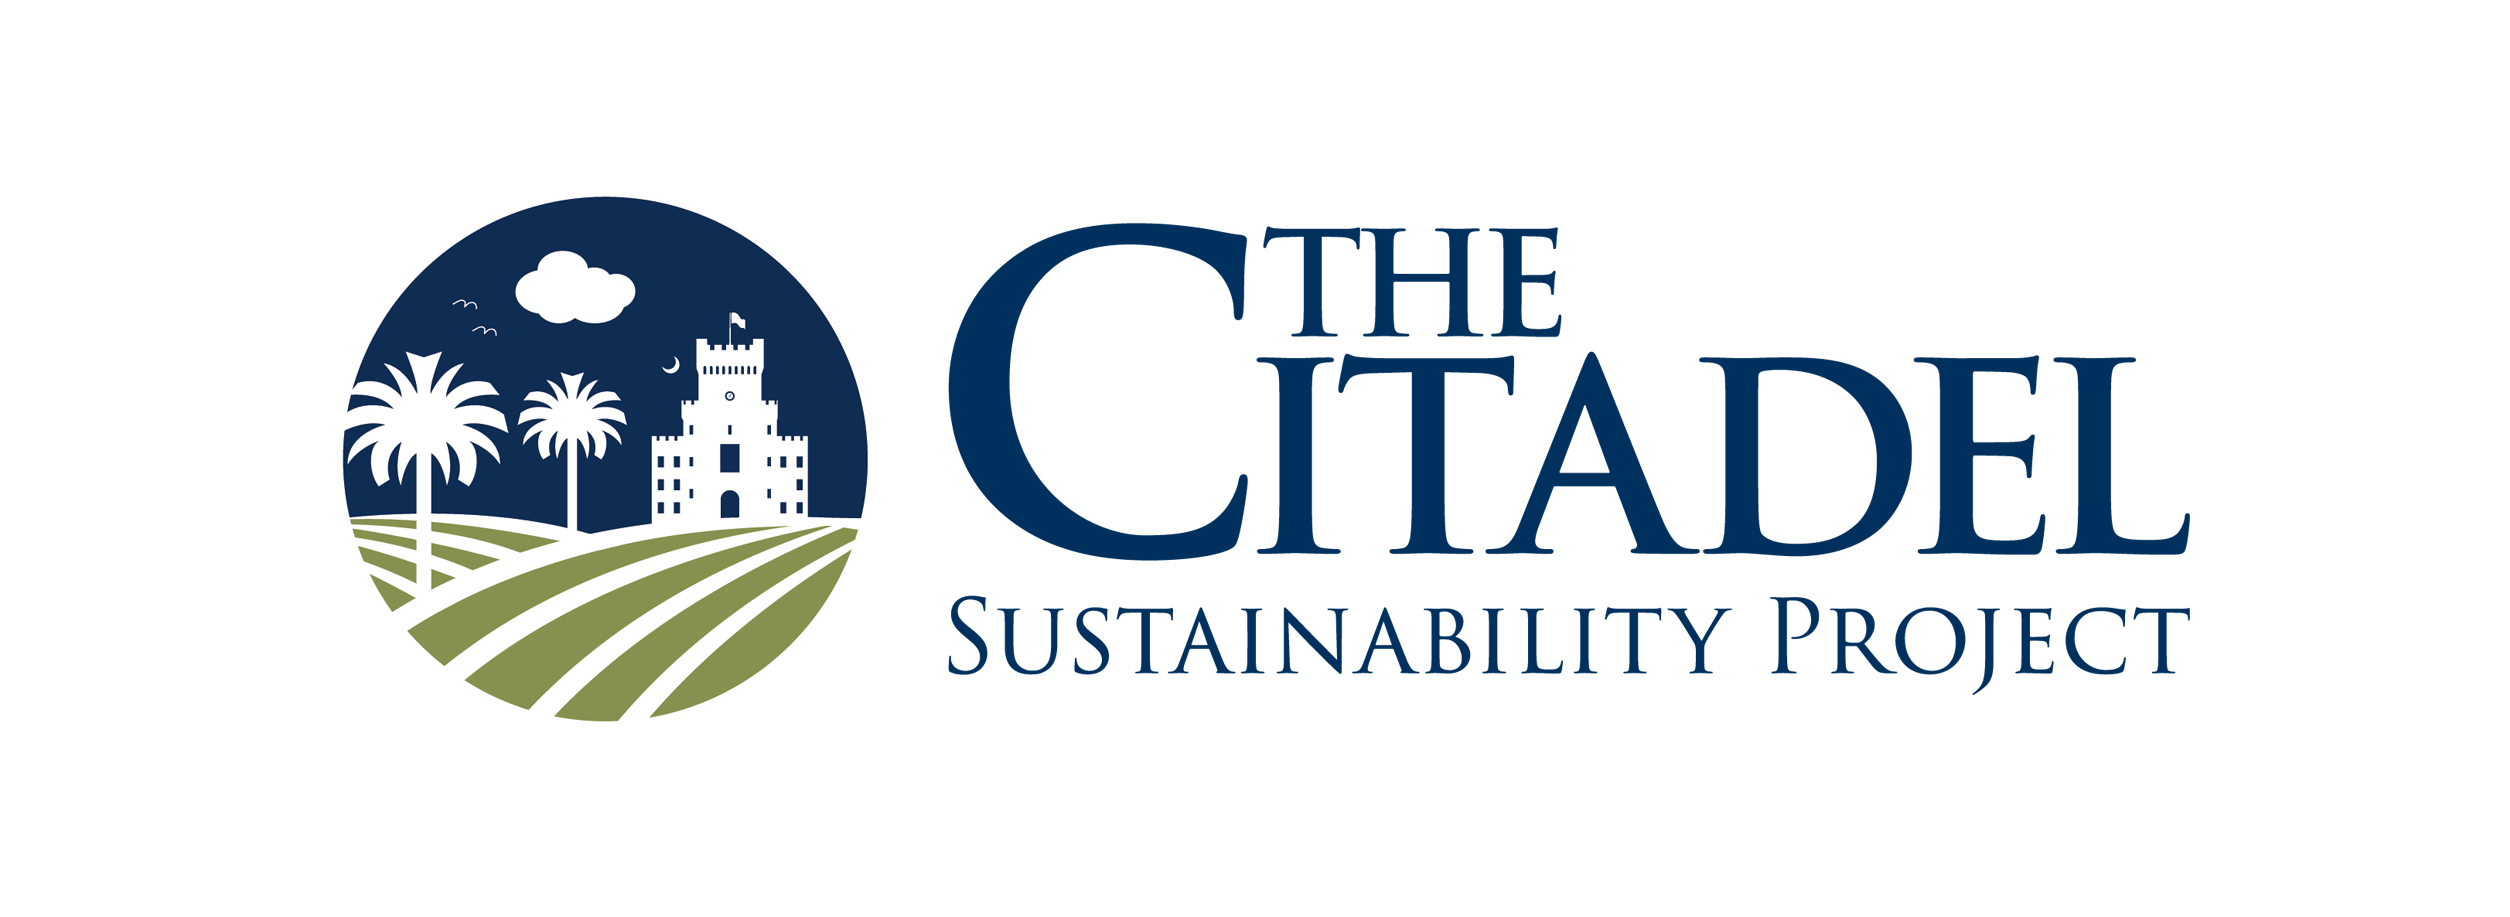 citadel-sustainability-project-logo.png